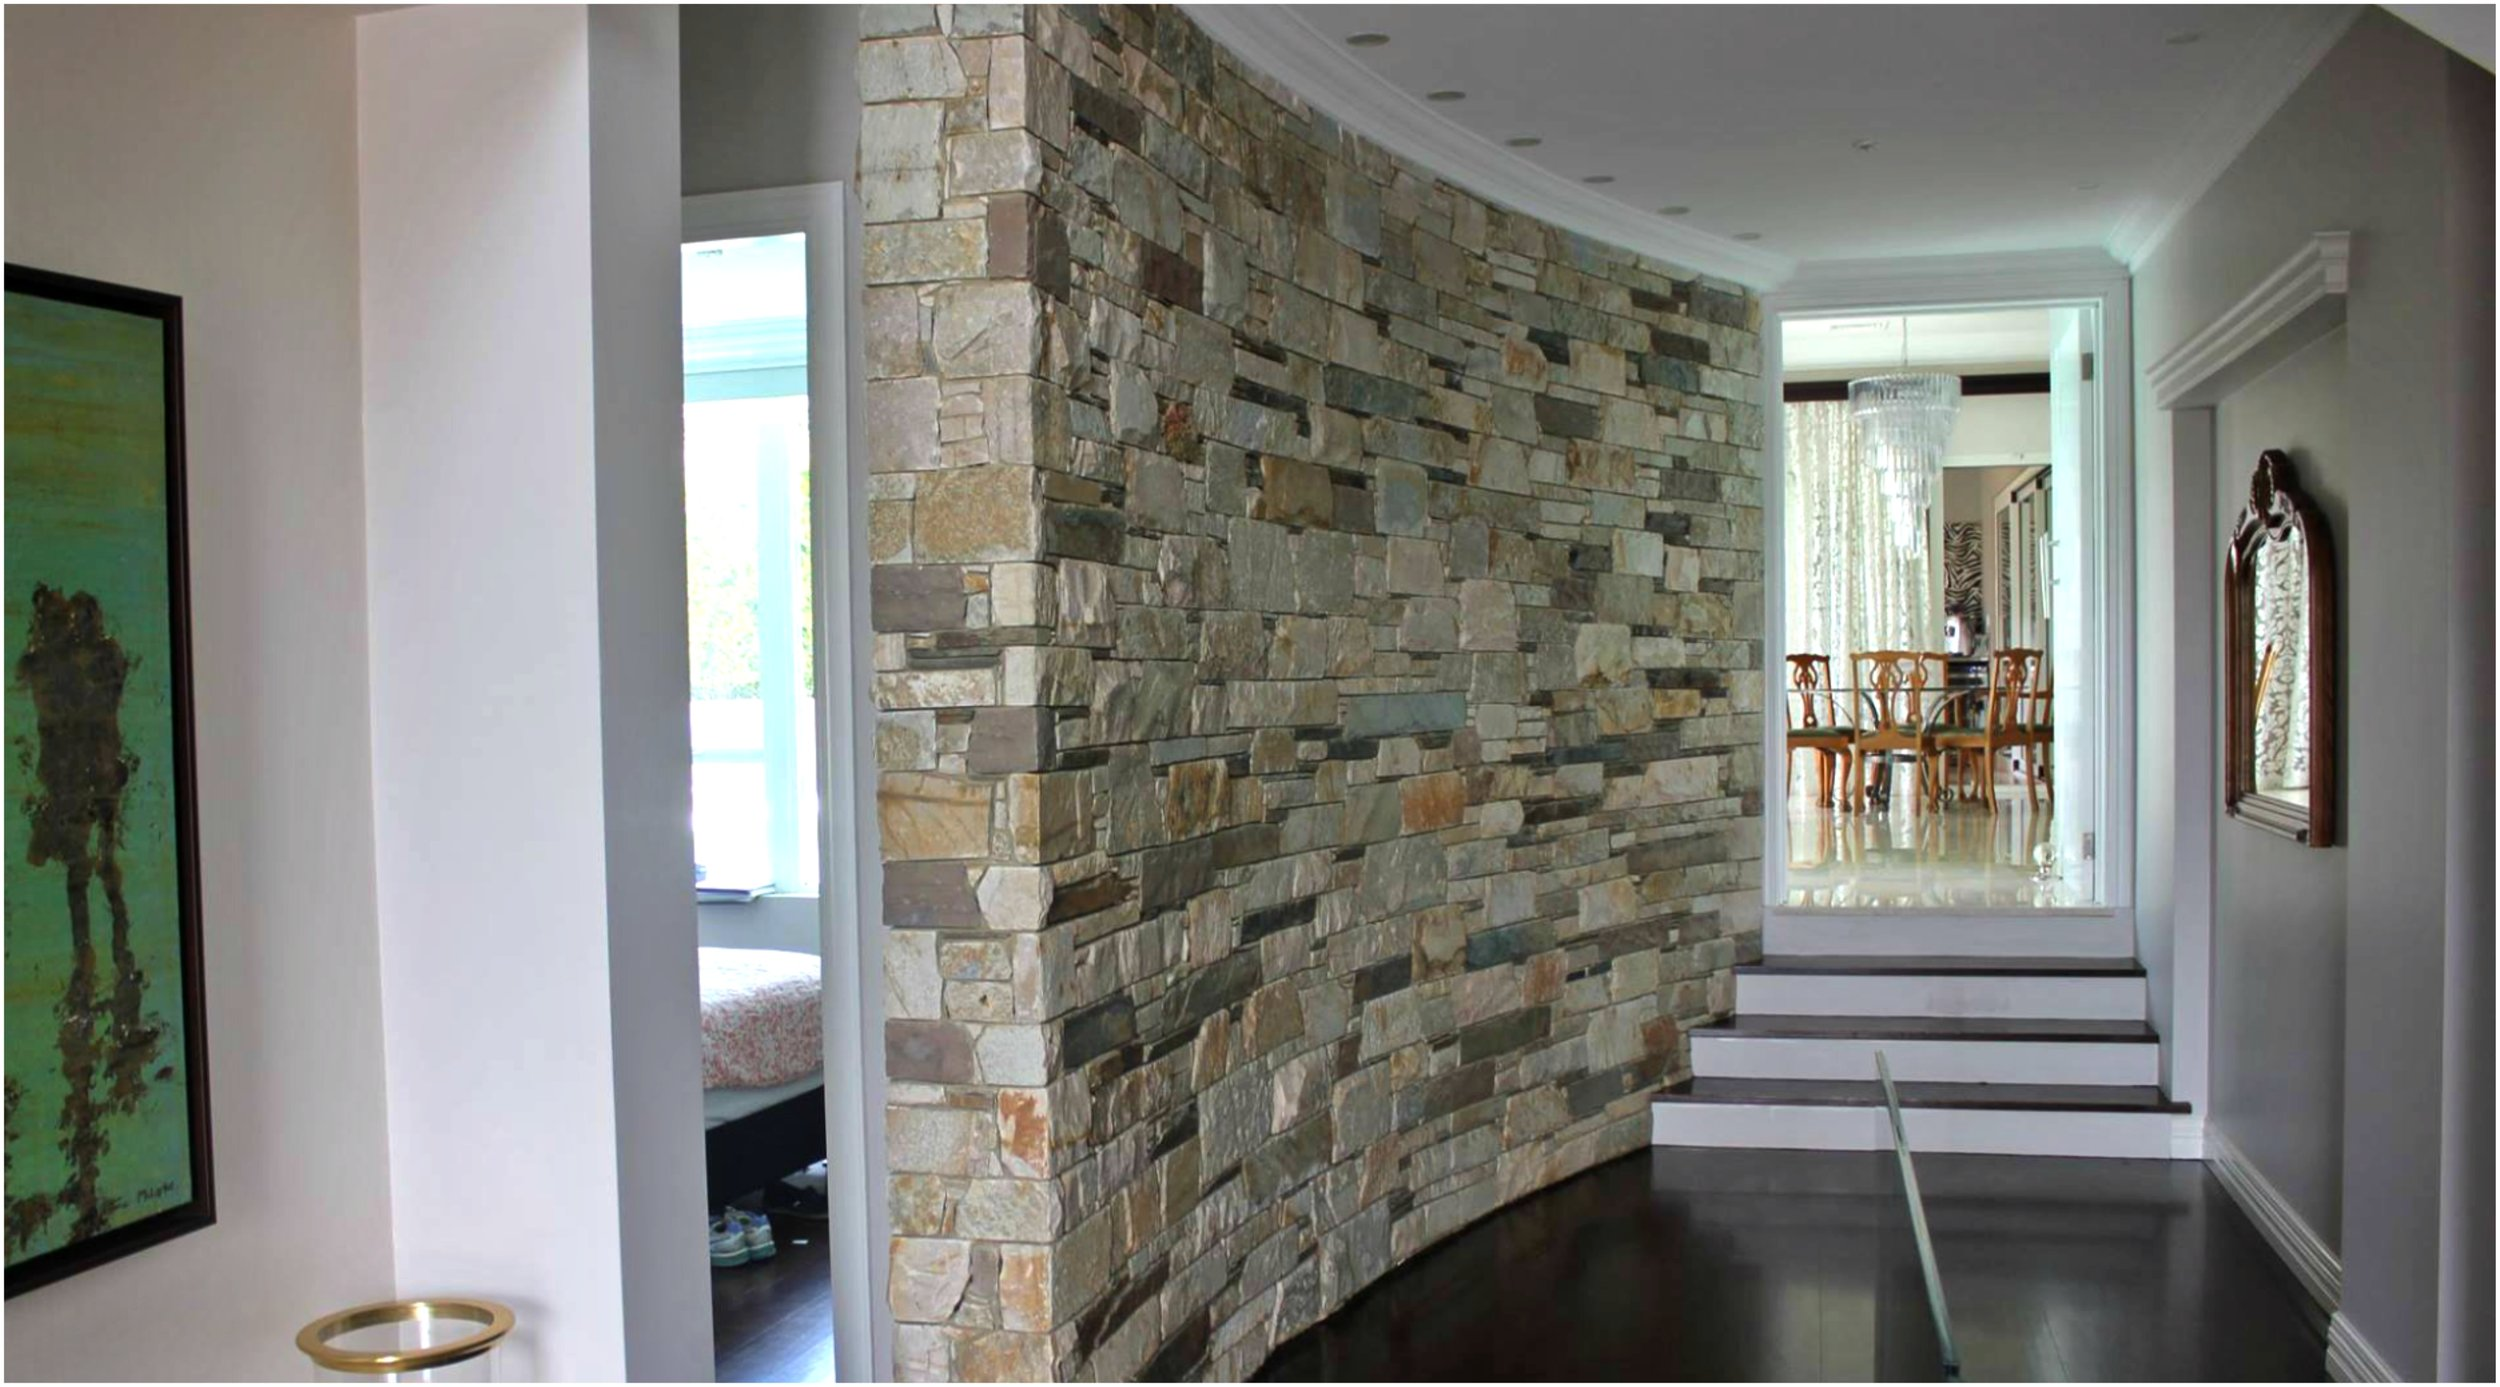 Perth Feature Stone curved wall.jpg